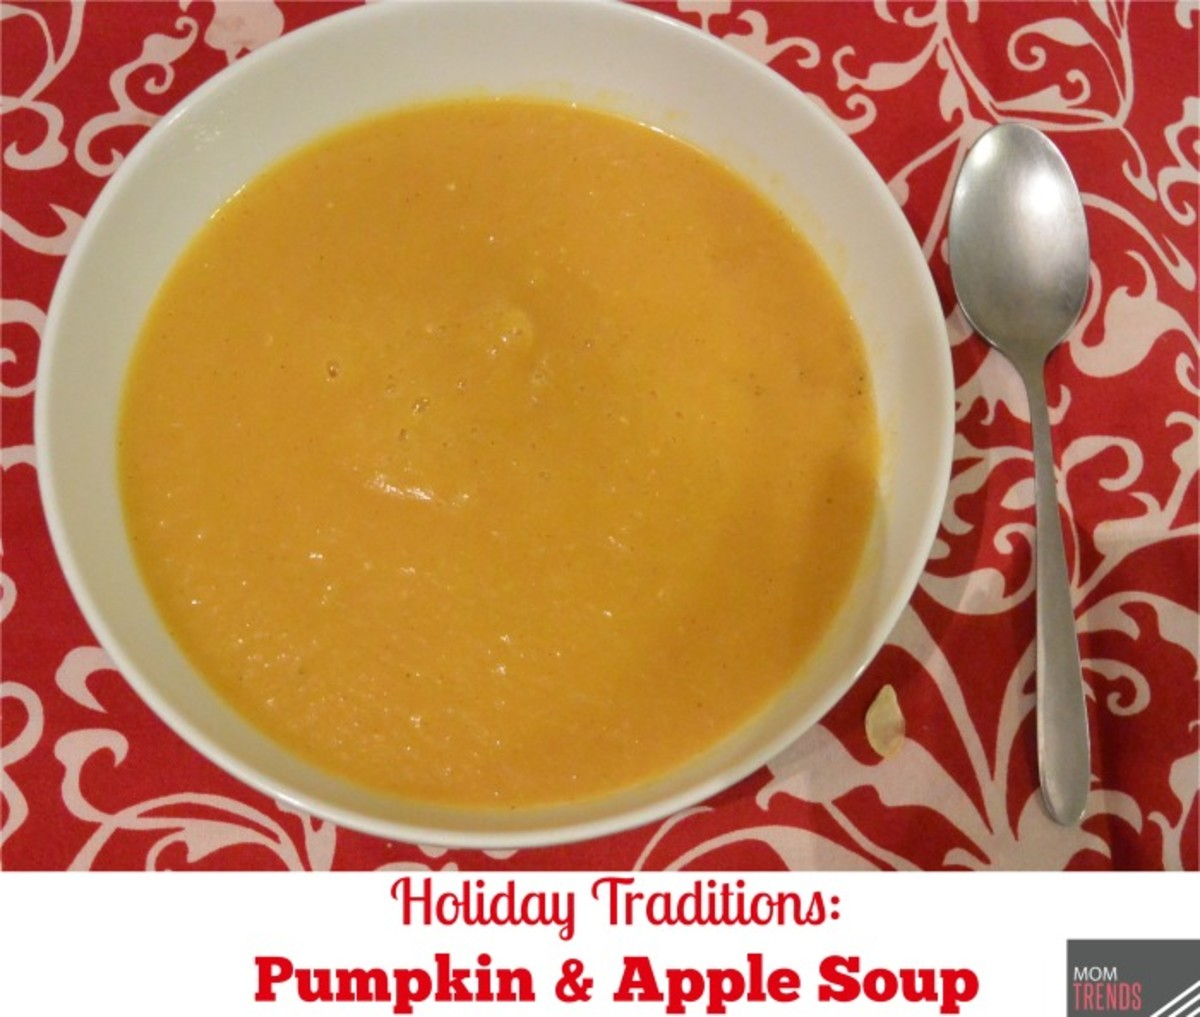 Pumpkin and Apple Soup